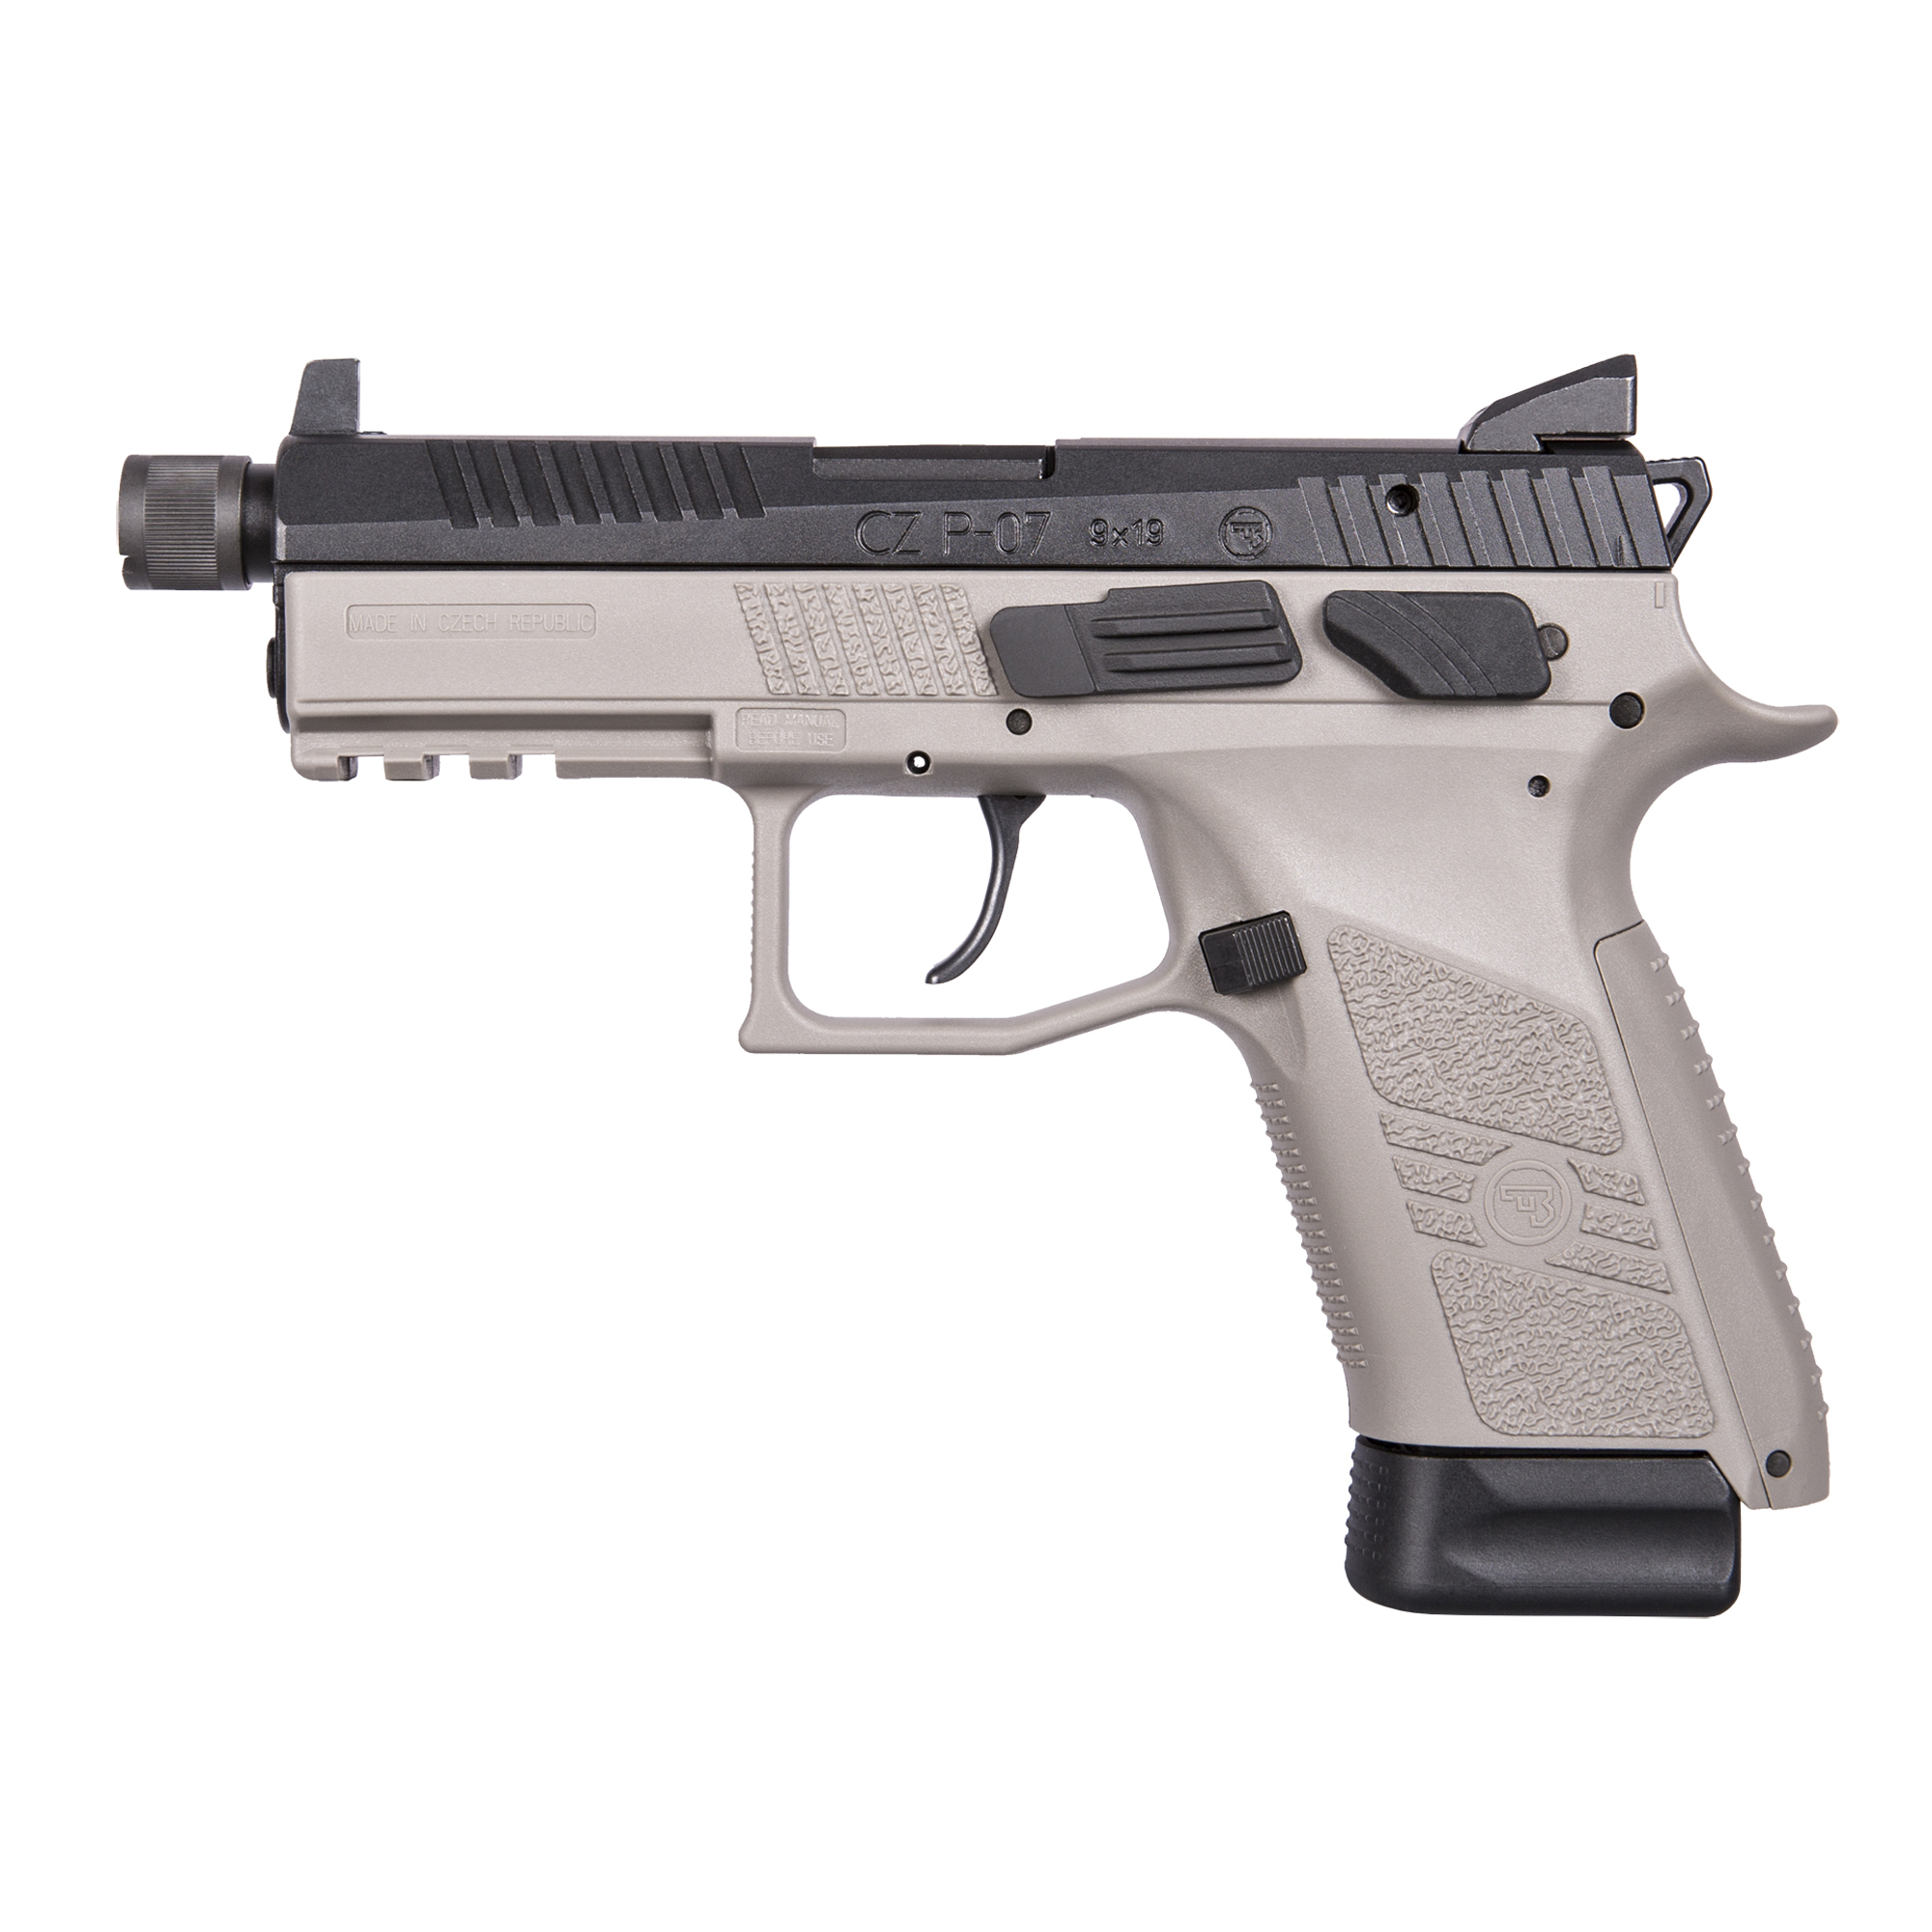 """Like the P-09"""" the P-07's safety and decocker are interchangeable with a few minutes and minimal tools. Add to that small"""" medium and large backstraps and an integrated 1913 Picatinny rail on the dust cover and the P-07 is adaptable to the shooter and their needs"""" from service pistol to bedside protector to the envy of the shooting range."""